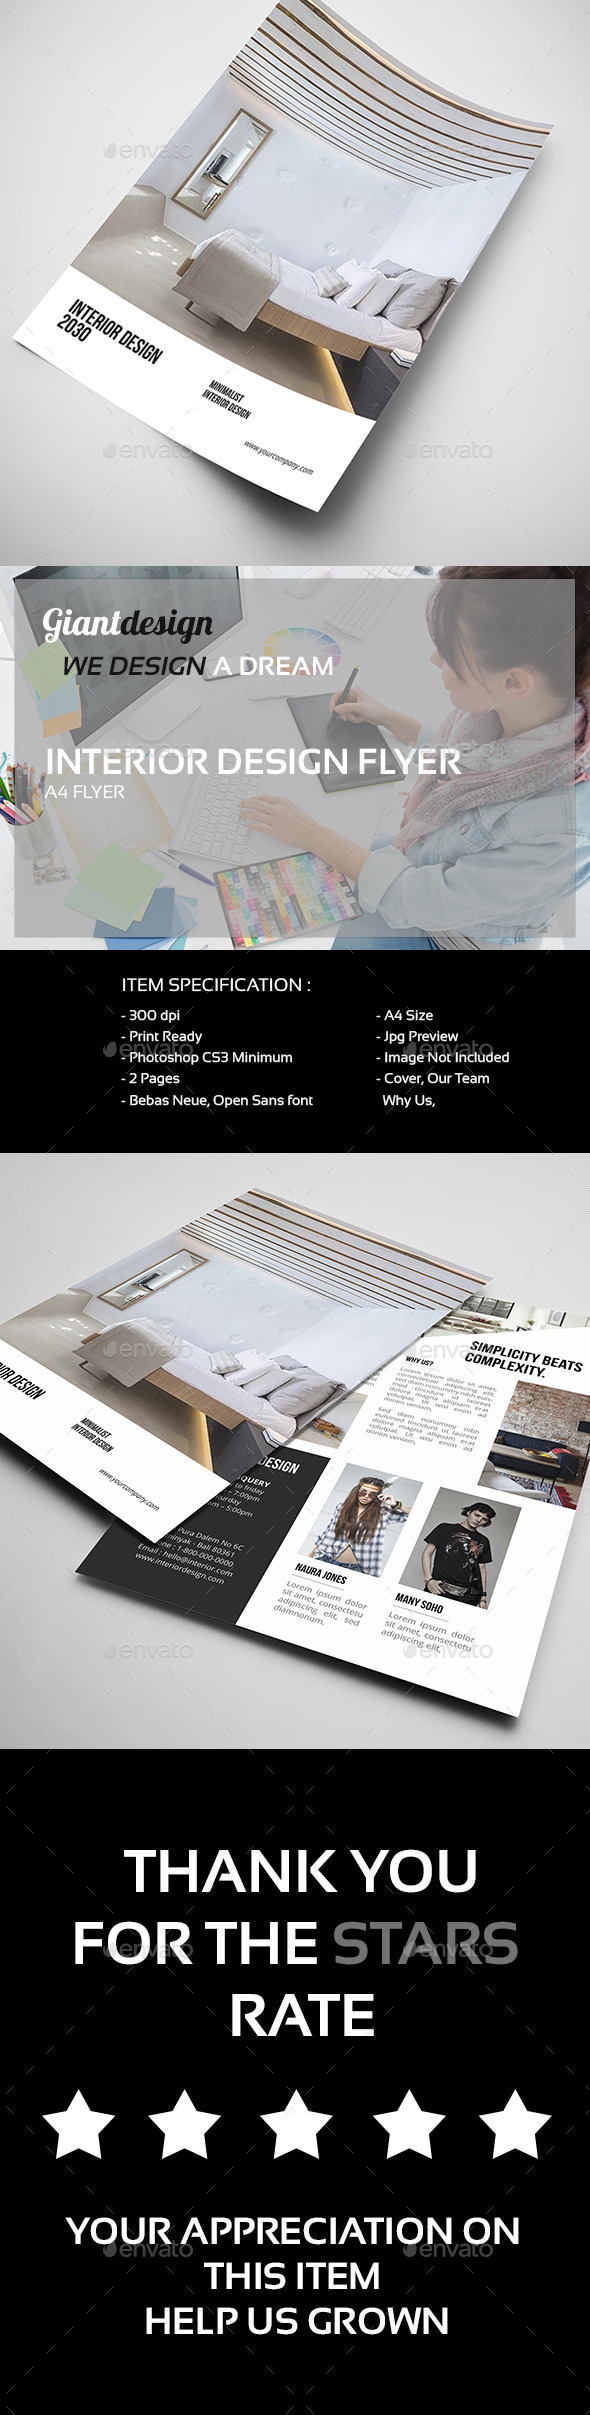 Interior Design - A4 Flyer - Corporate Flyers